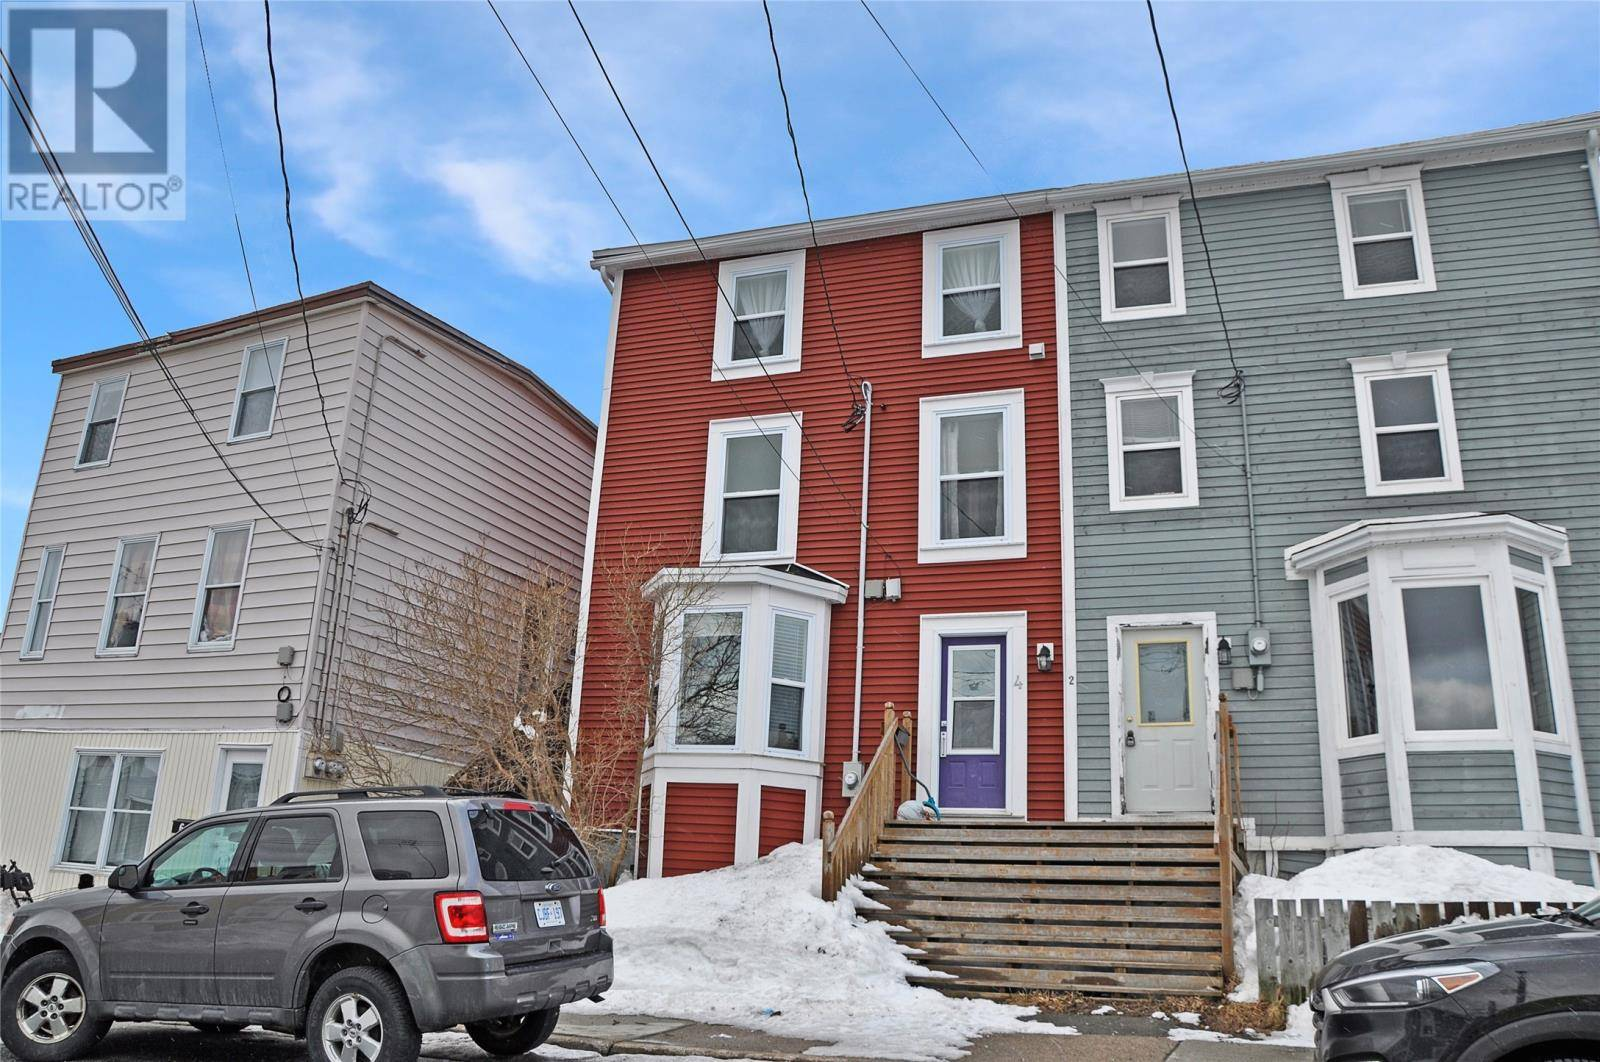 House for sale at 4 Cabot St St. John's Newfoundland - MLS: 1212191